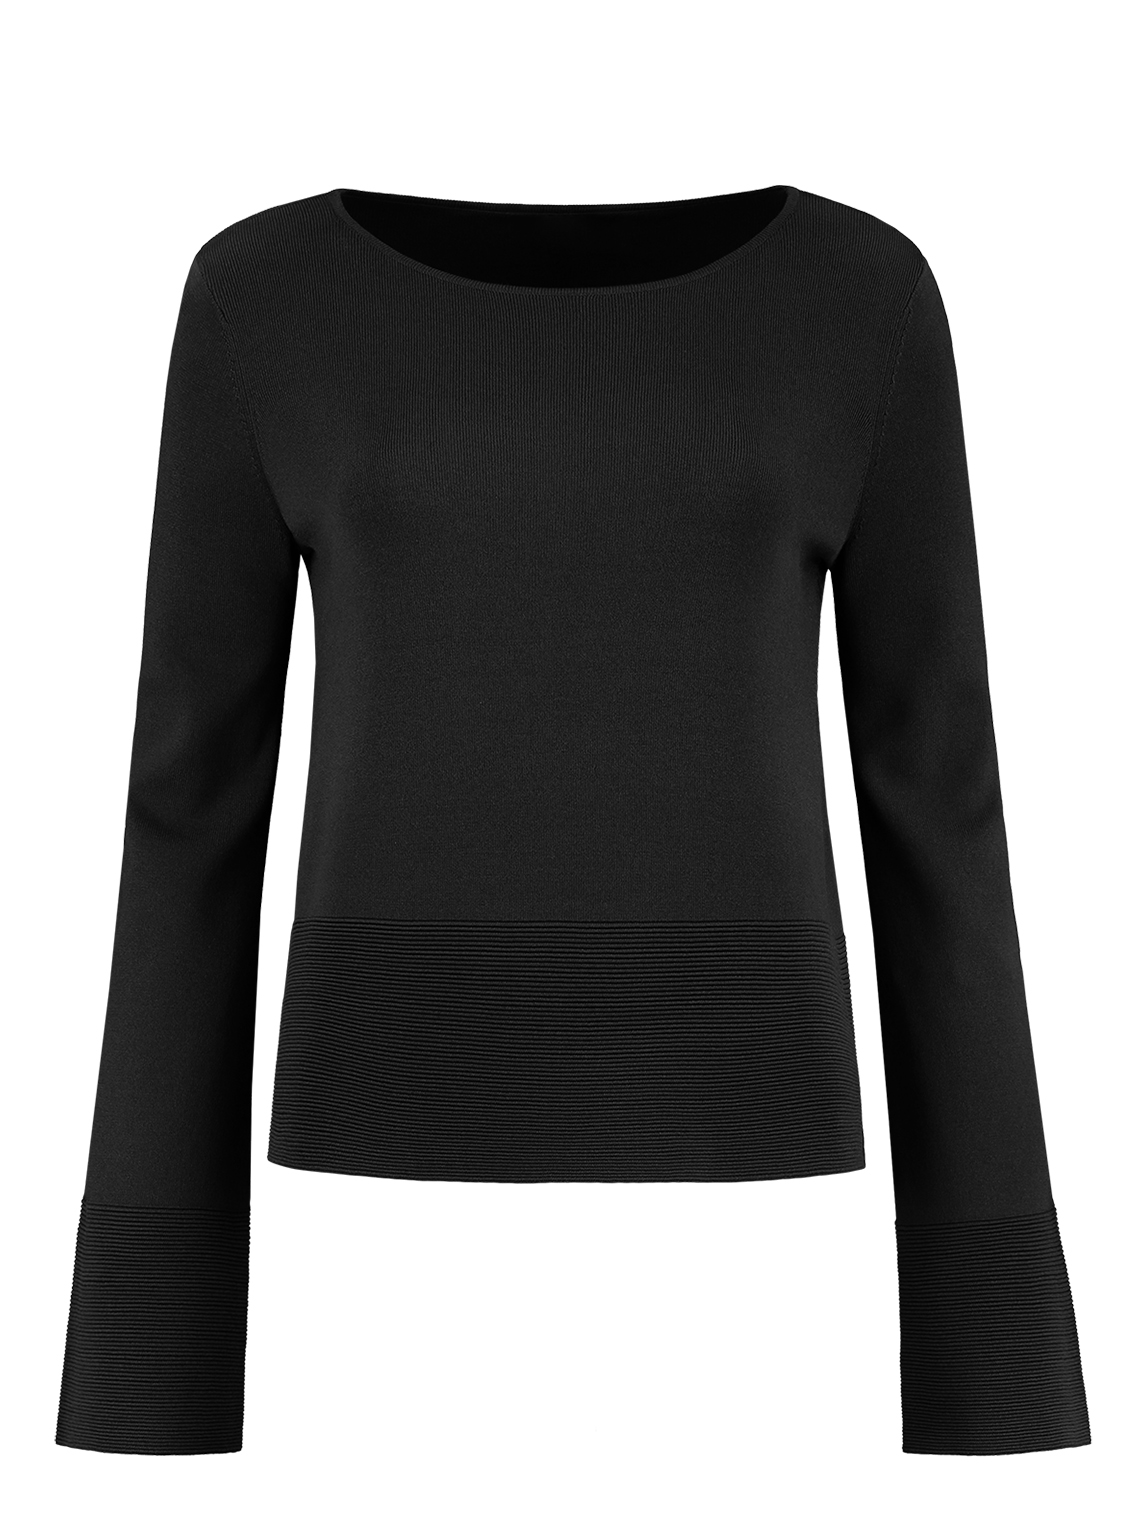 Zwarte dames top Nikkie - Jules Top - N7-484 1905 9000